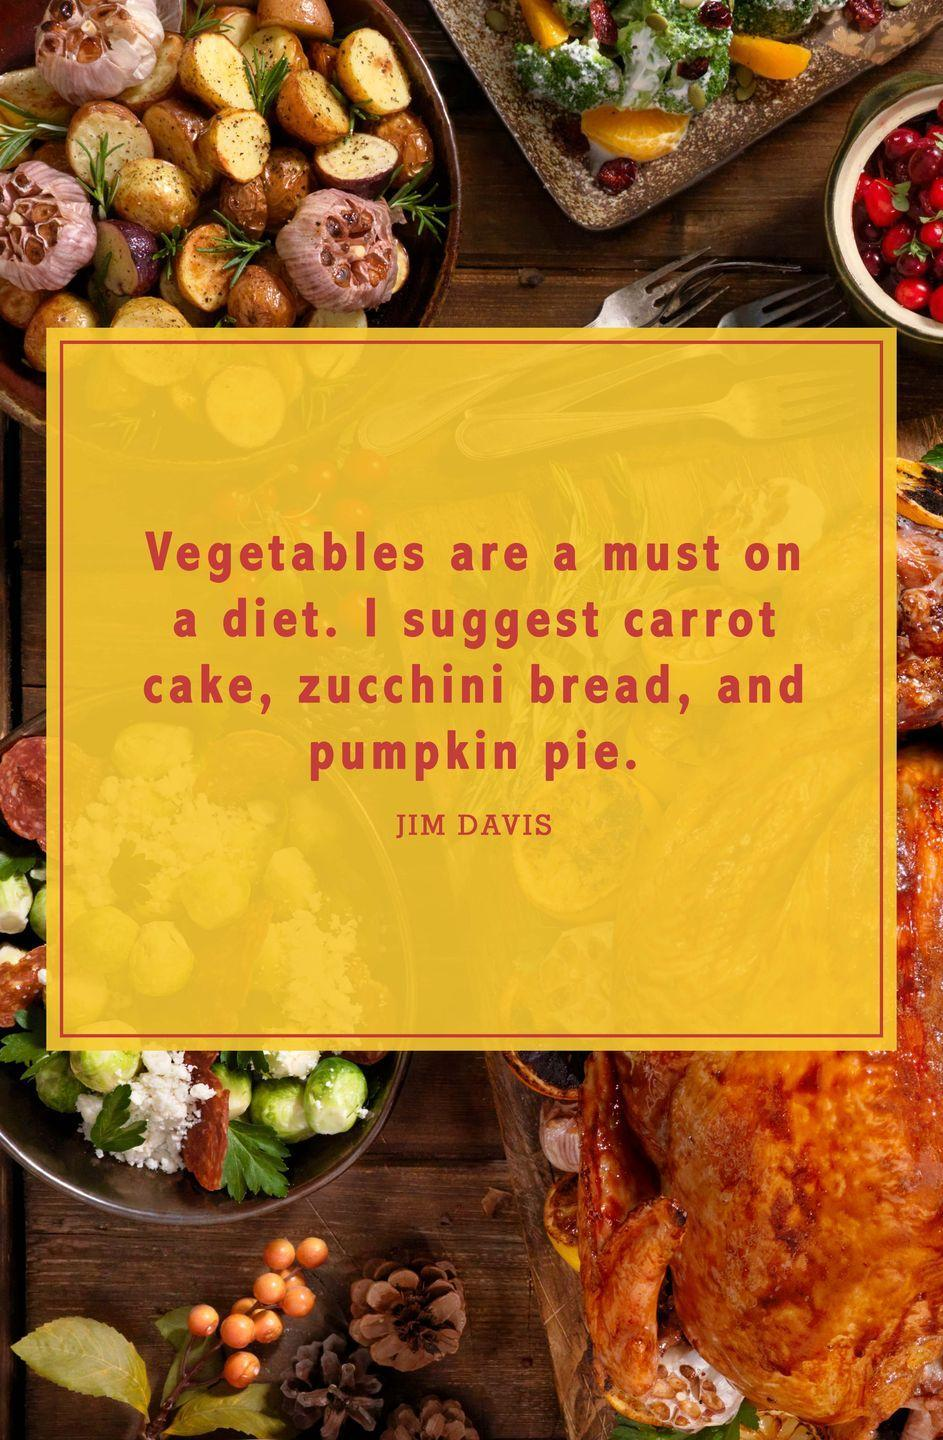 """<p>""""Vegetables are a must on a diet. I suggest carrot cake, zucchini bread, and pumpkin pie.""""</p>"""